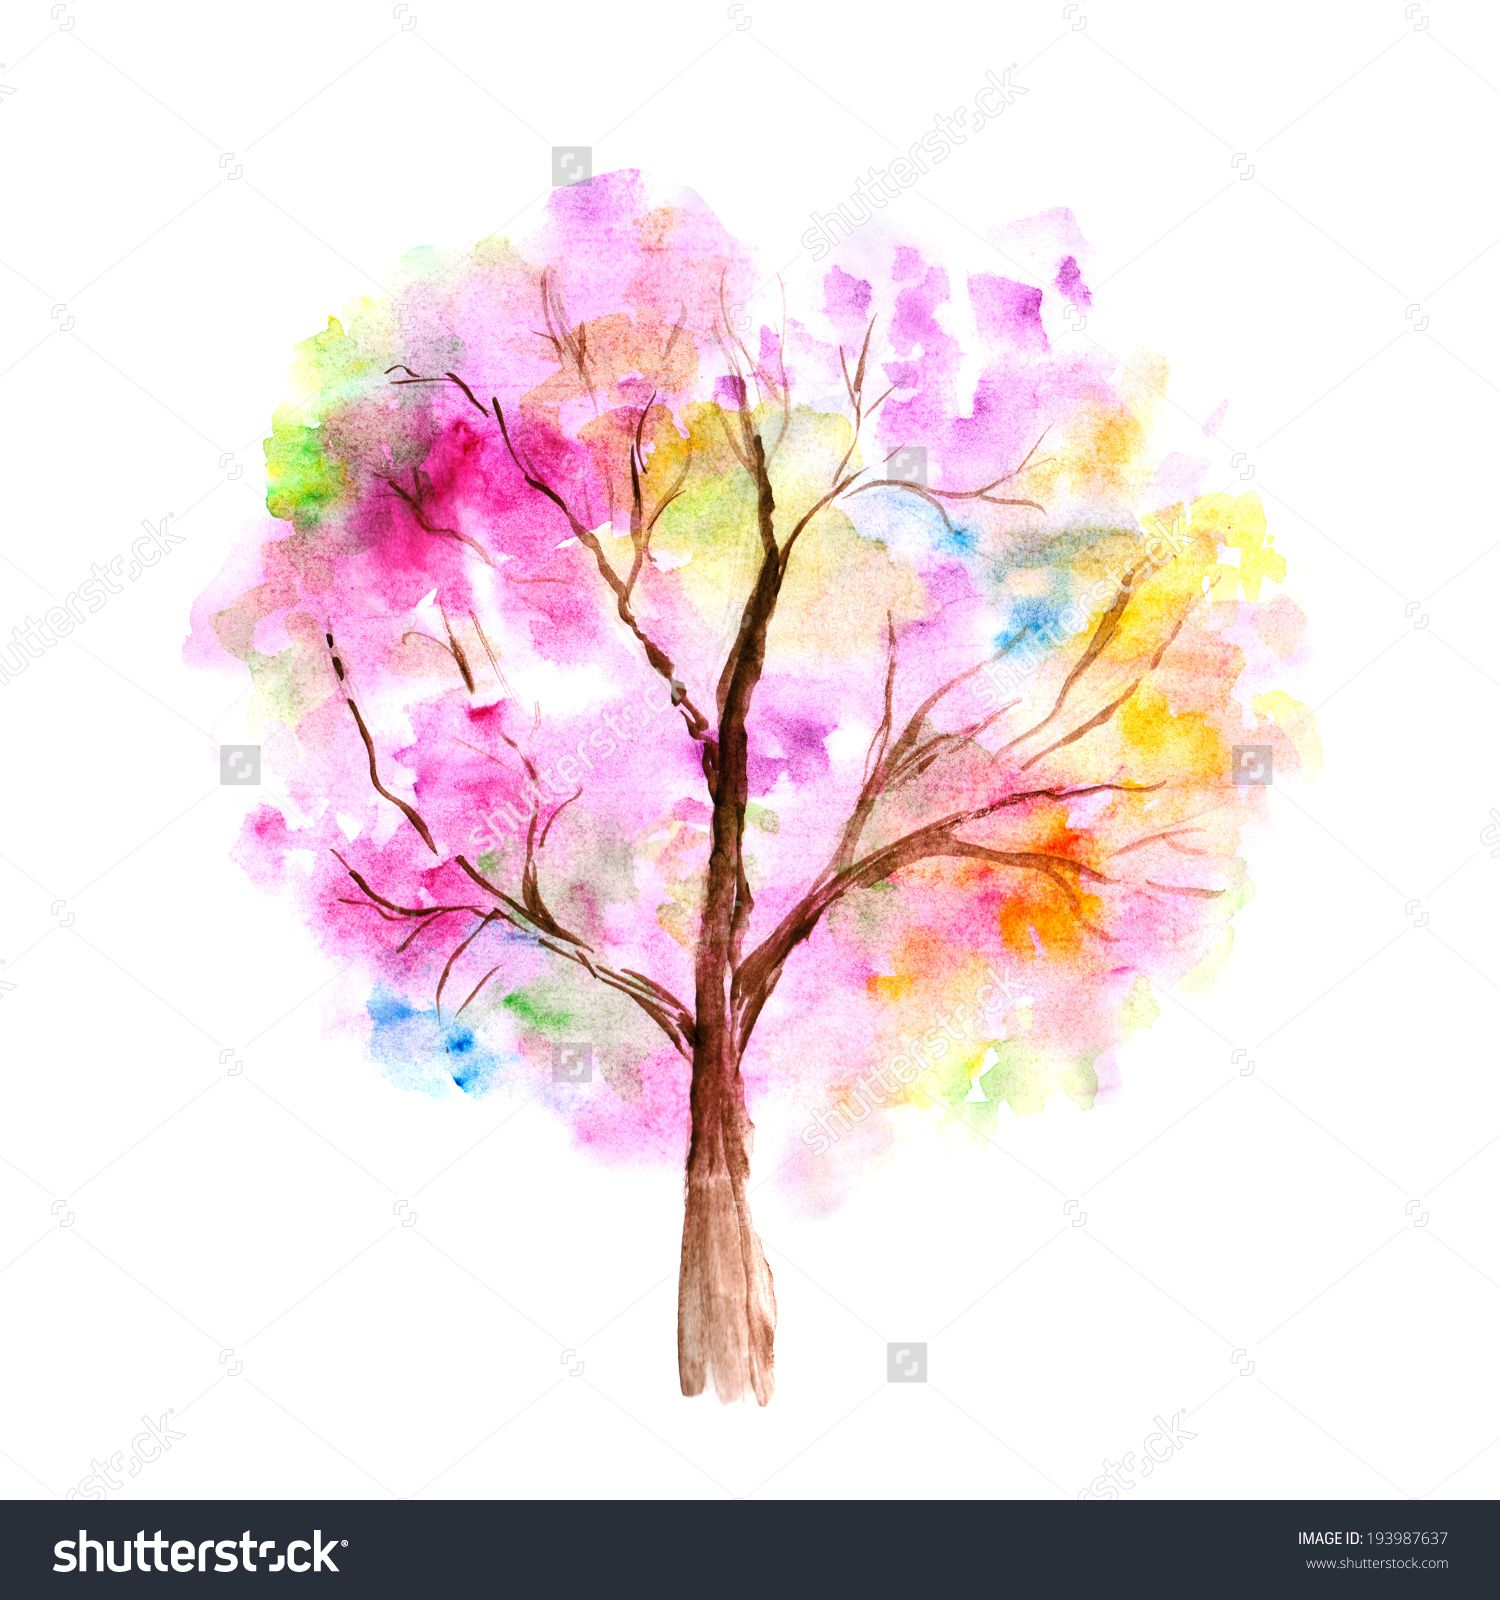 Stock Photo Colorful Watercolor Tree Background 193987637 Jpg